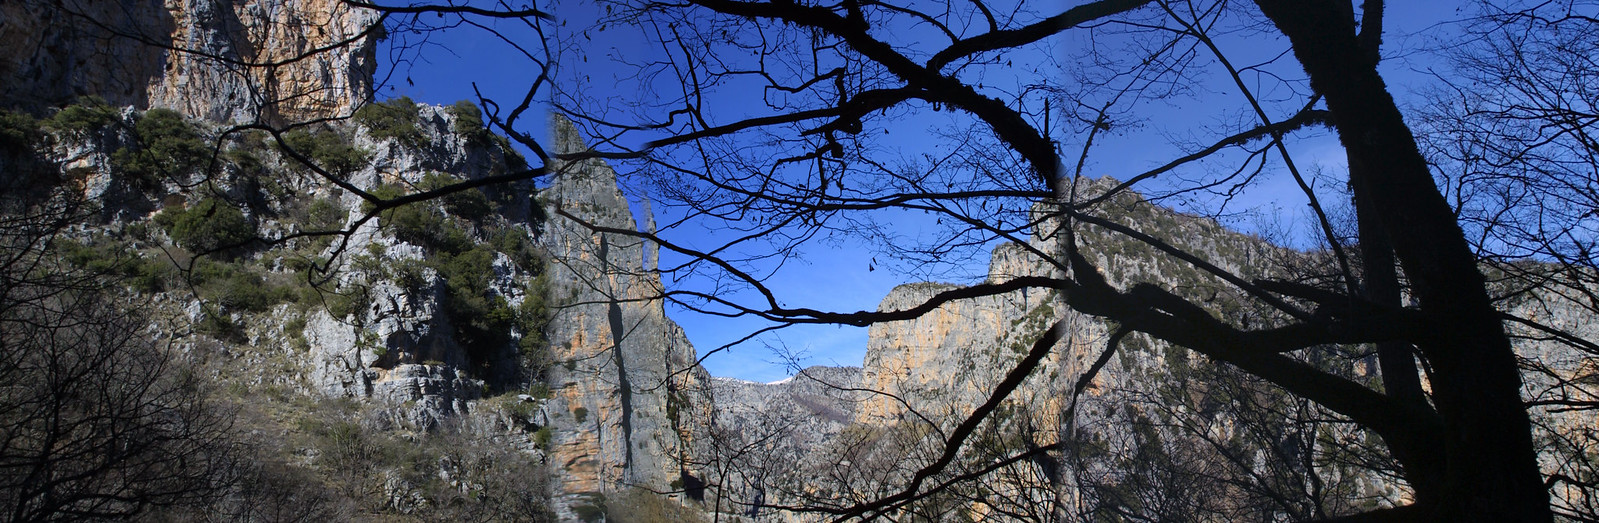 Vikos Gorge, North of Ioannina, Greece